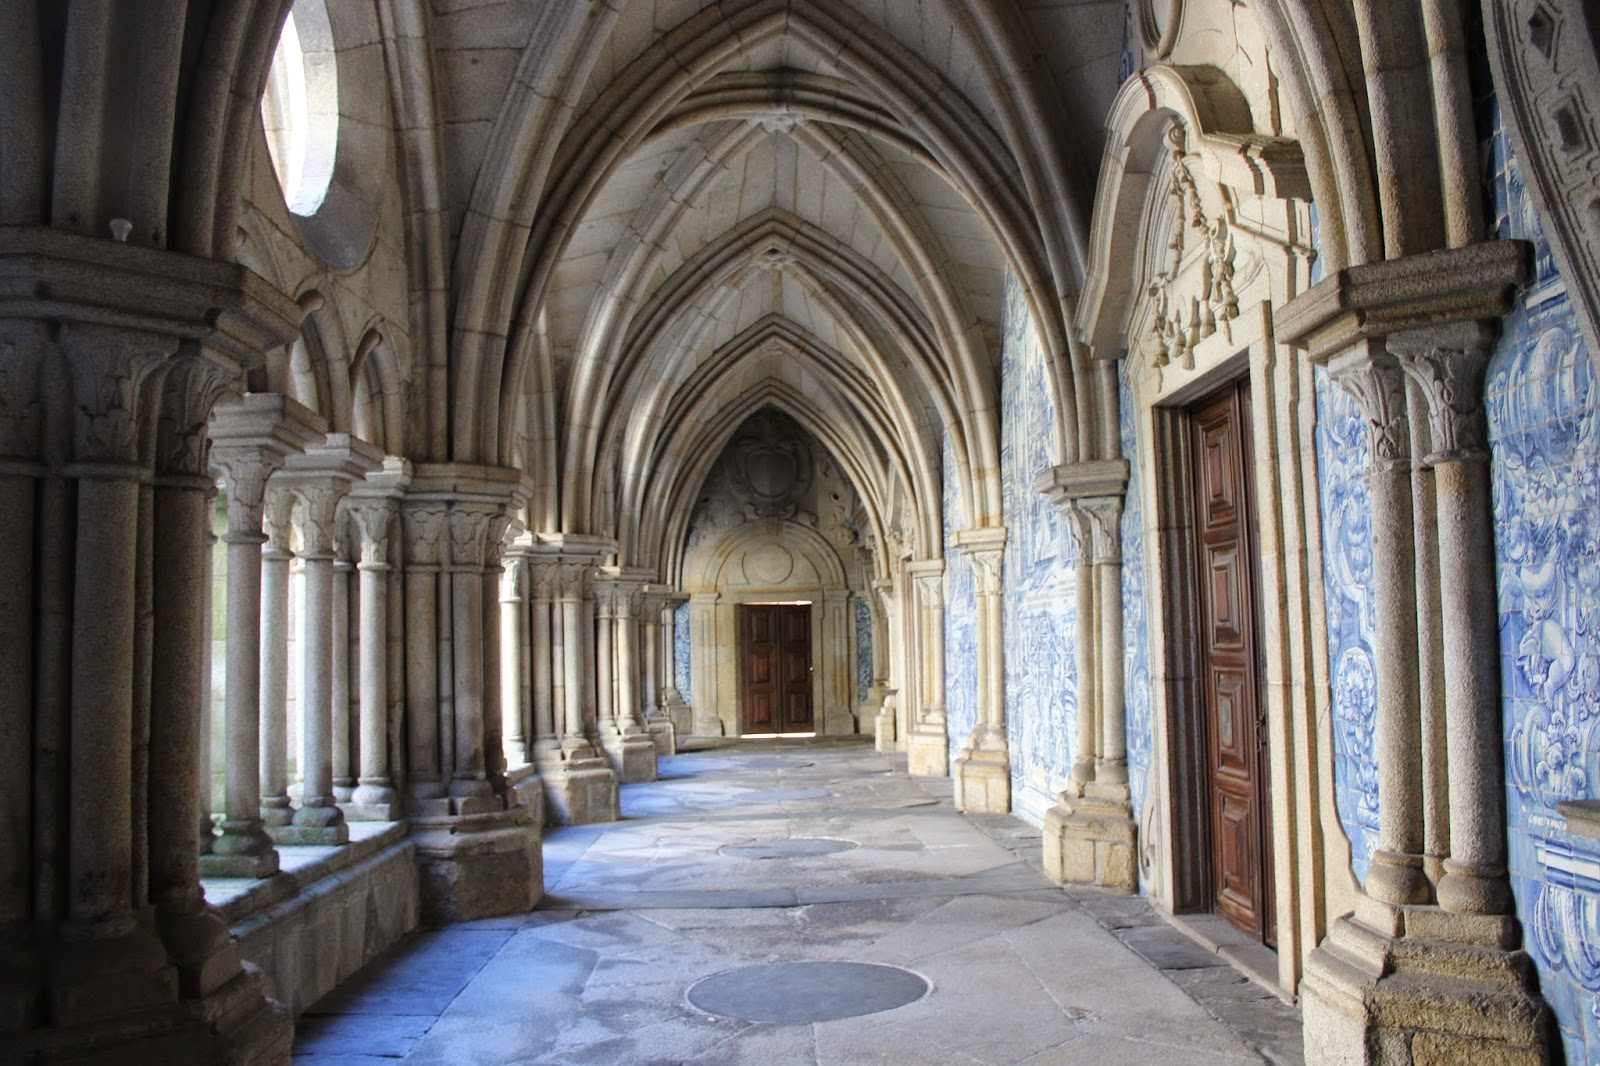 Gothic Arches Have Points In The Centre Versus Roman Style Which Were Rounded Arc Came Later And Permits Higher Ceilings Without So Much